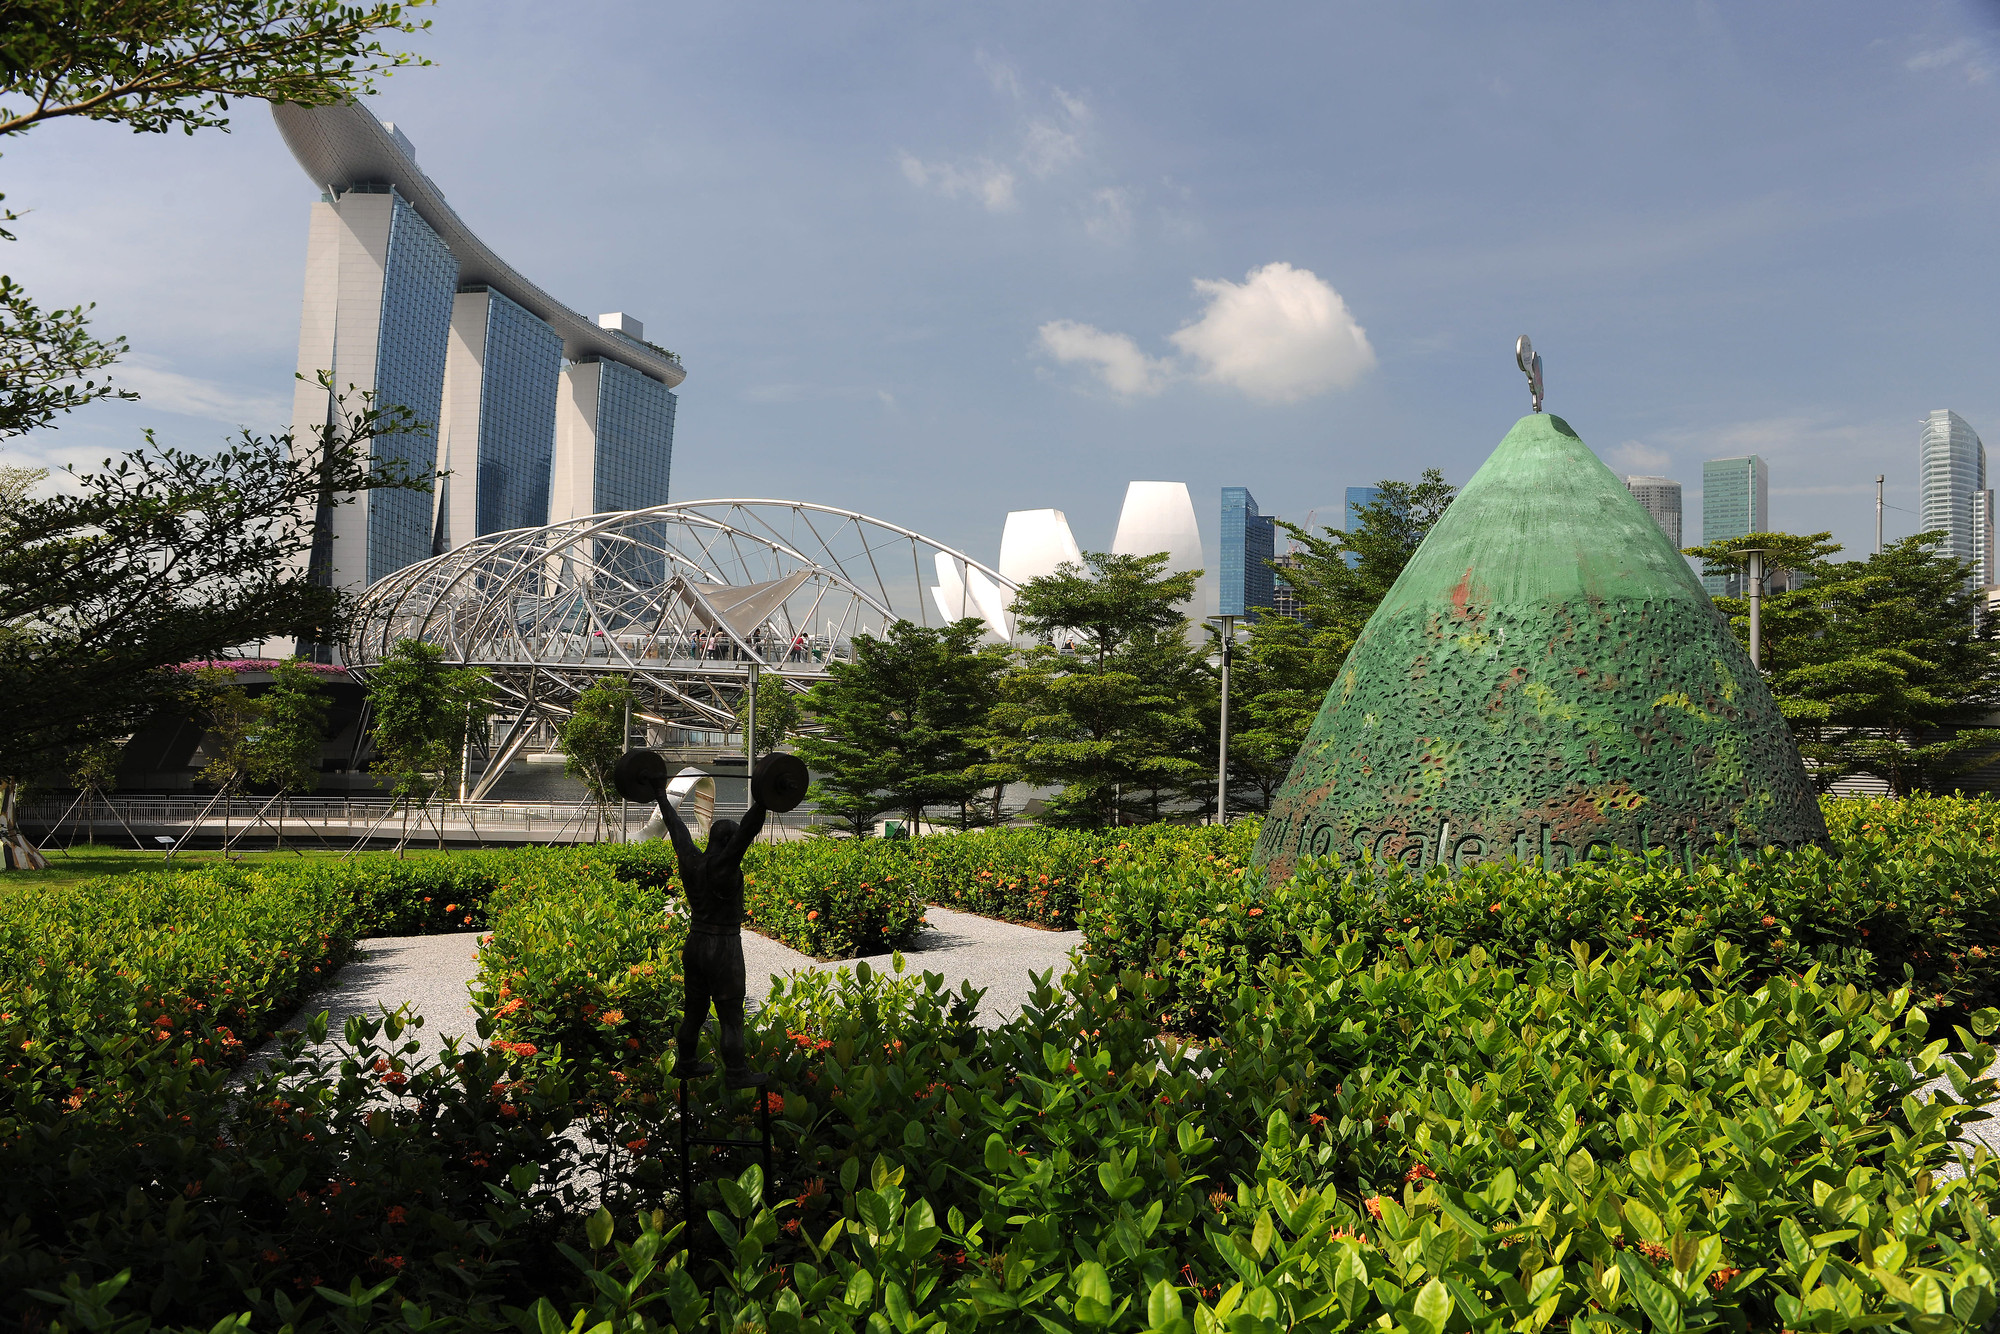 Marina Bay. Image Courtesy of Urban Land Institute